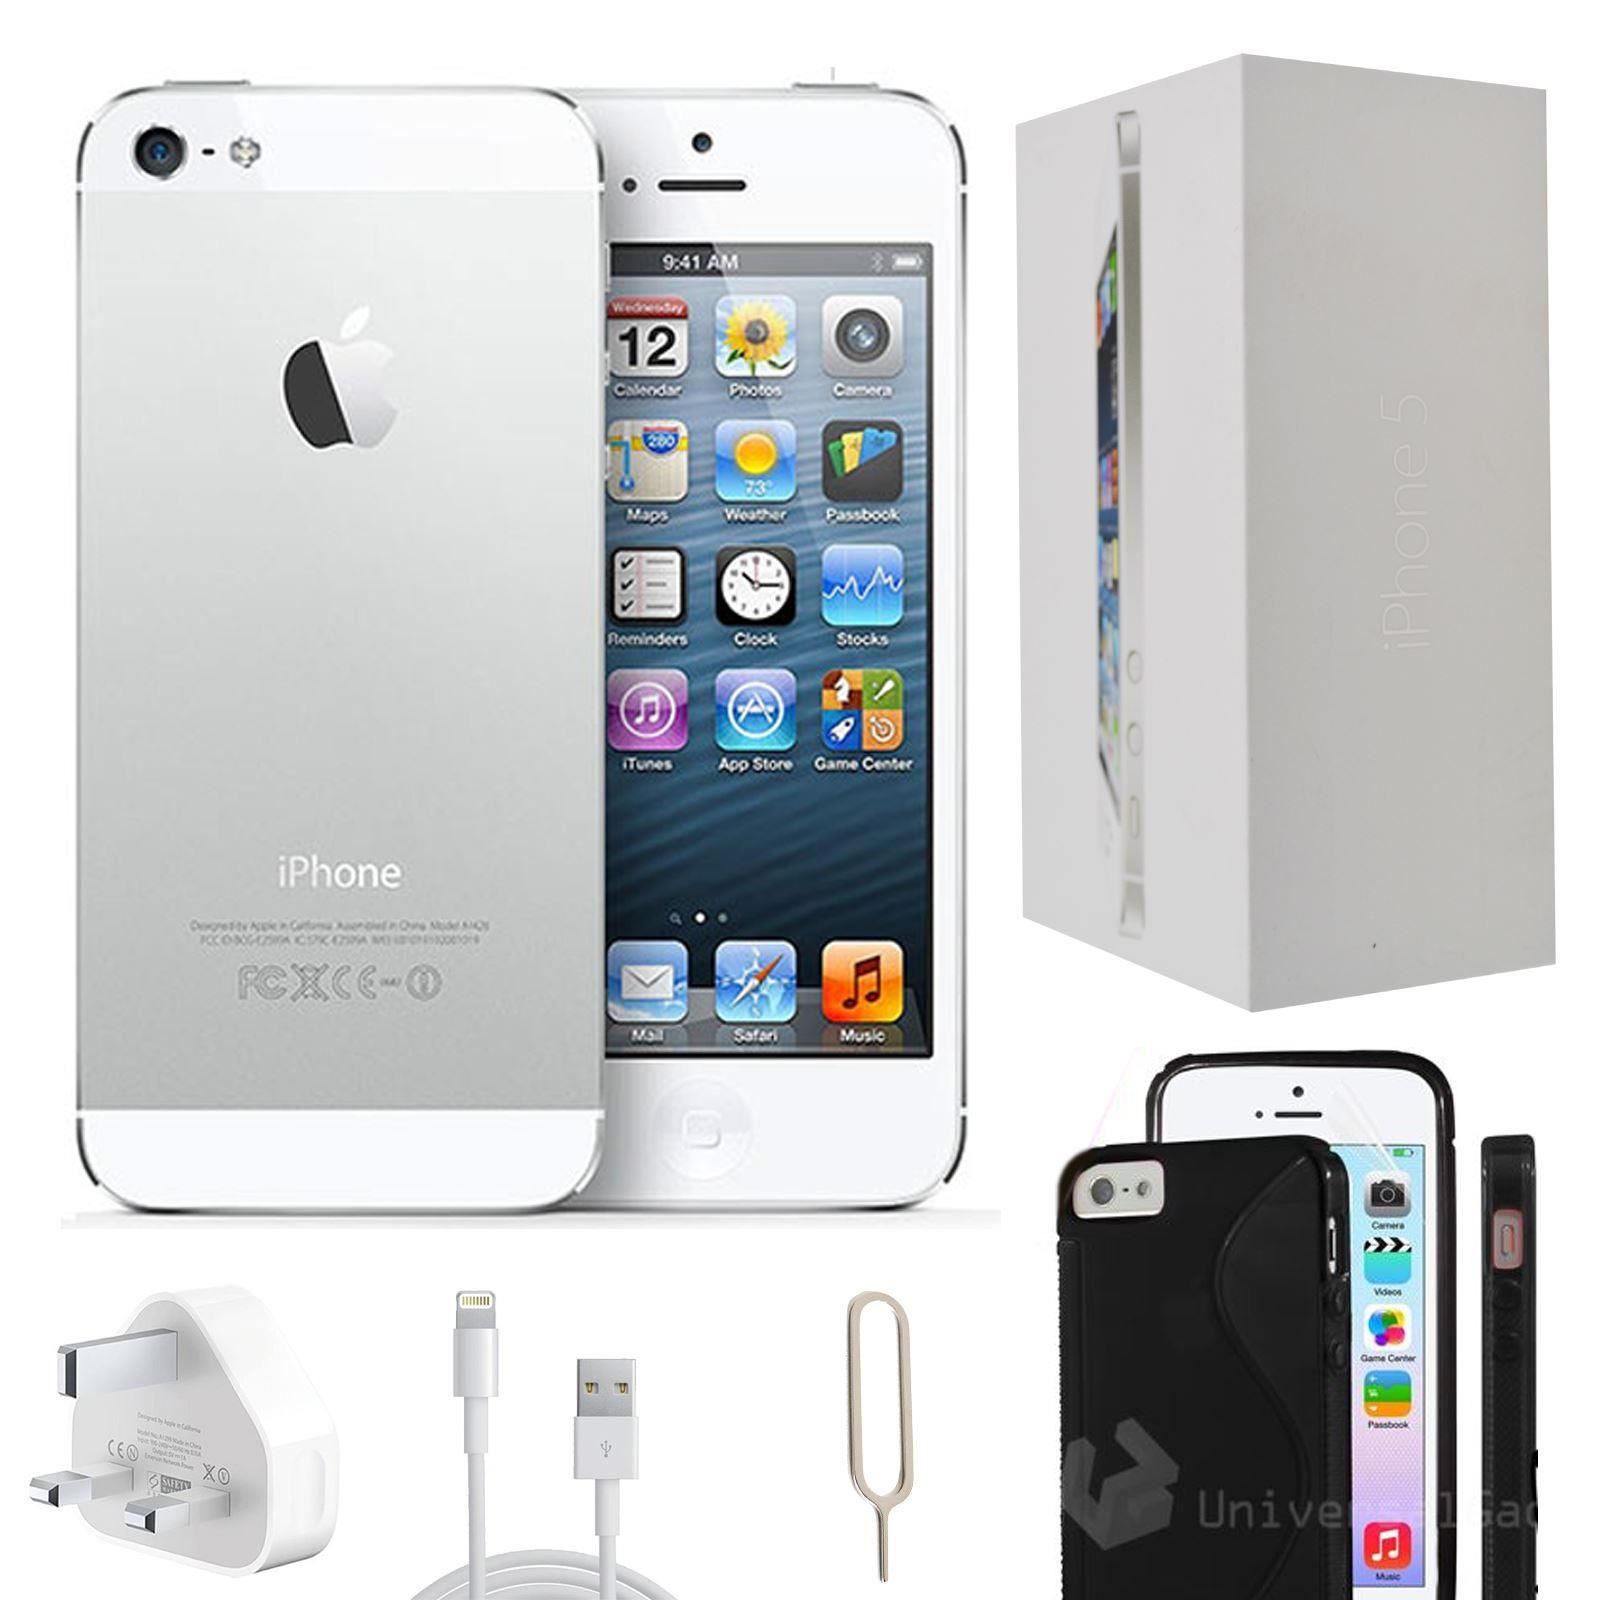 apple iphone 5 32gb white unlocked refurbished grade a accessories ebay. Black Bedroom Furniture Sets. Home Design Ideas